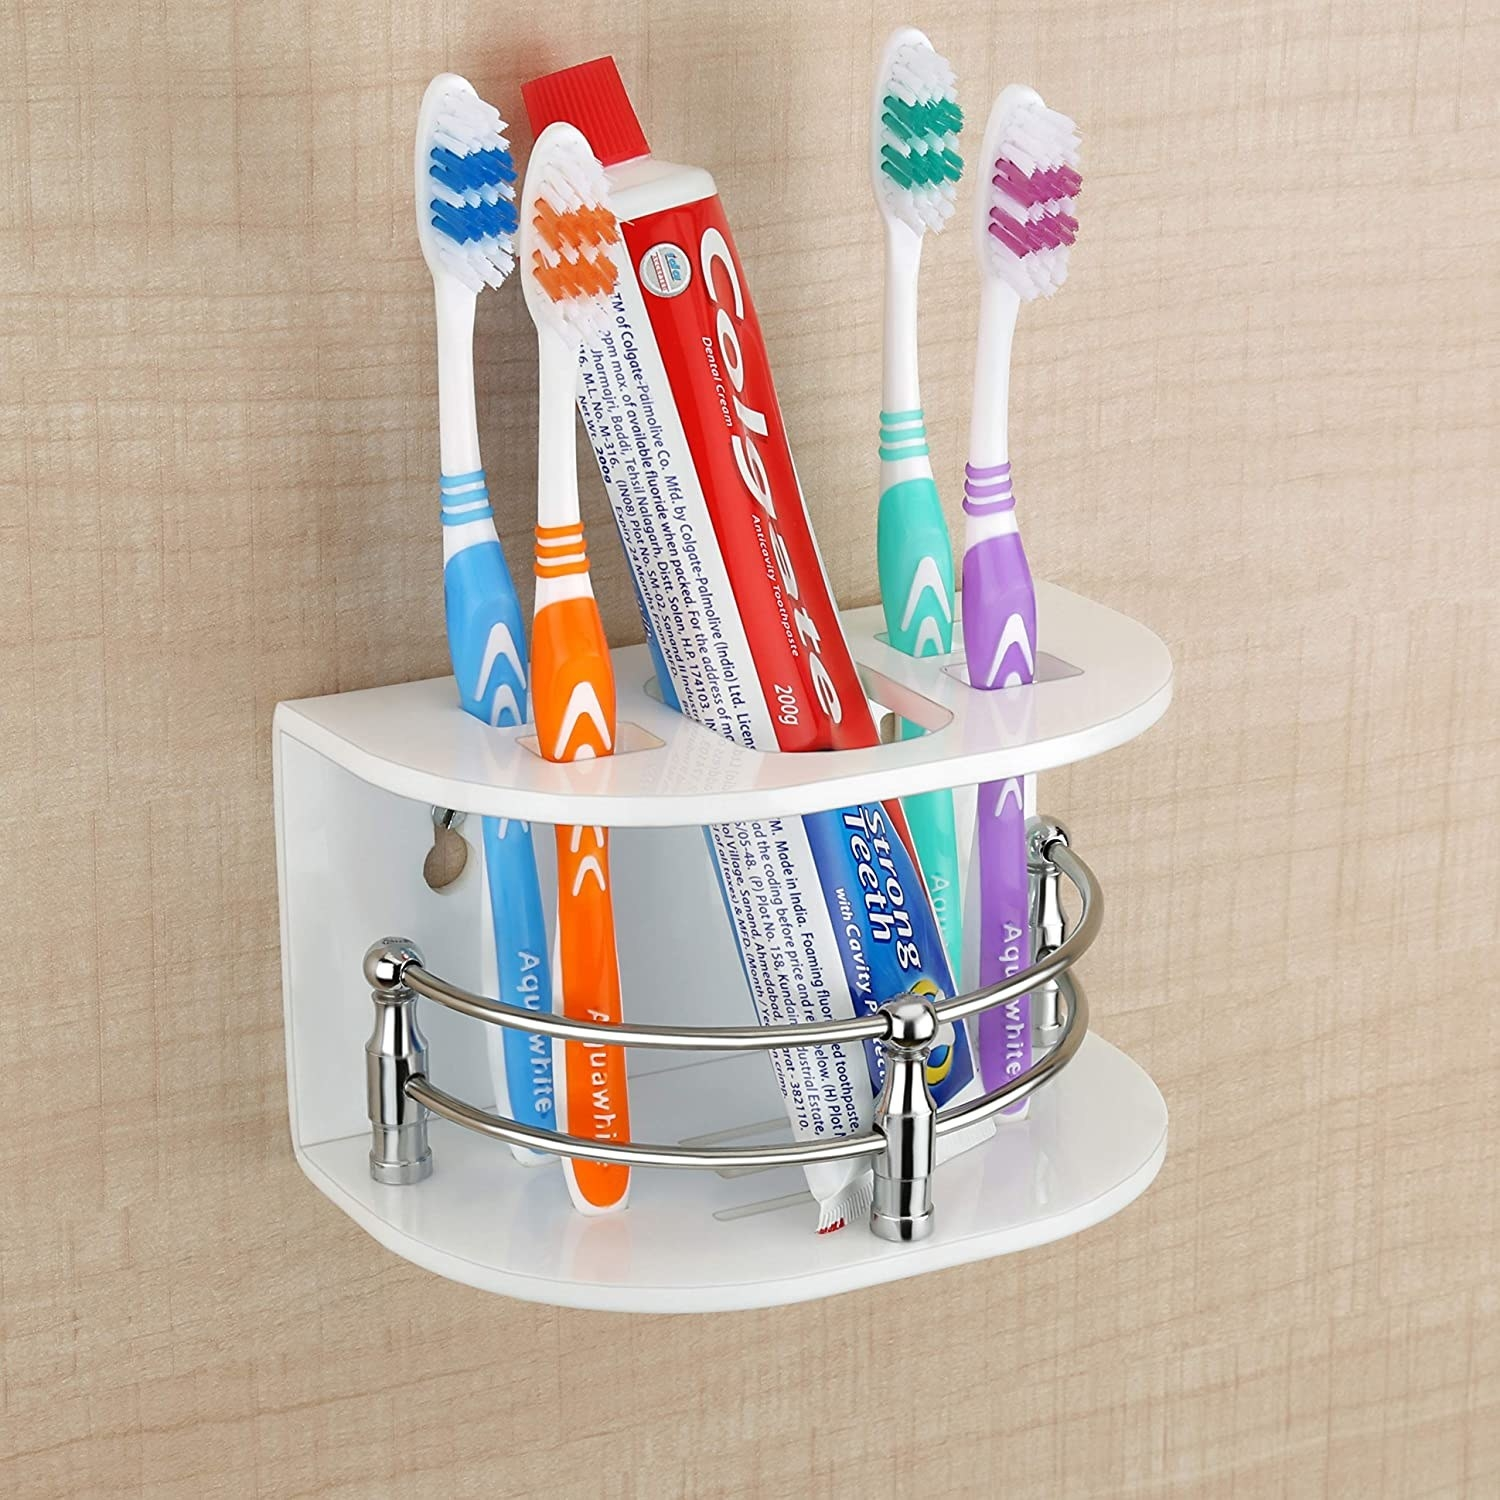 A wall-mounted shelf with toothbrushes and toothpaste